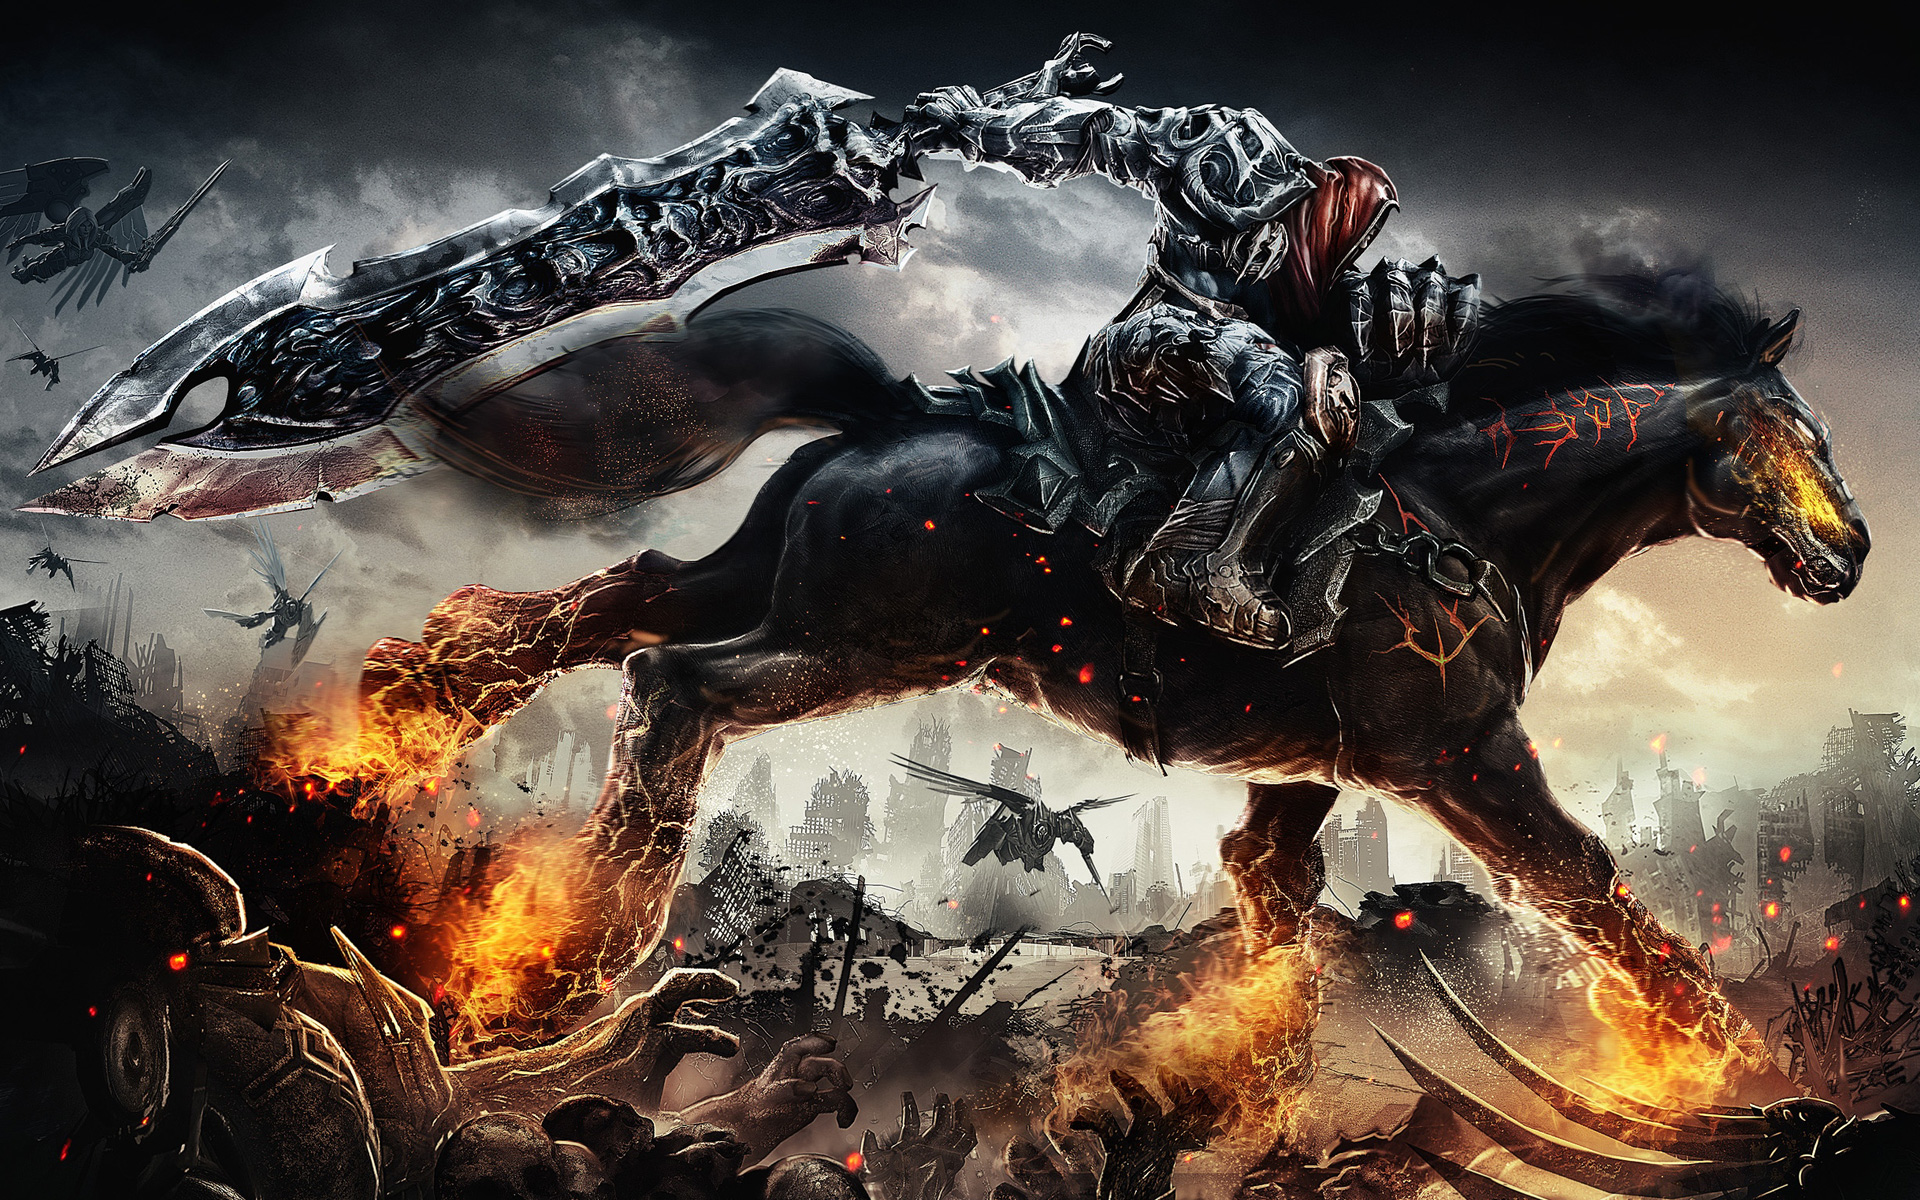 Download Darksiders Wallpaper 2 1920x1200